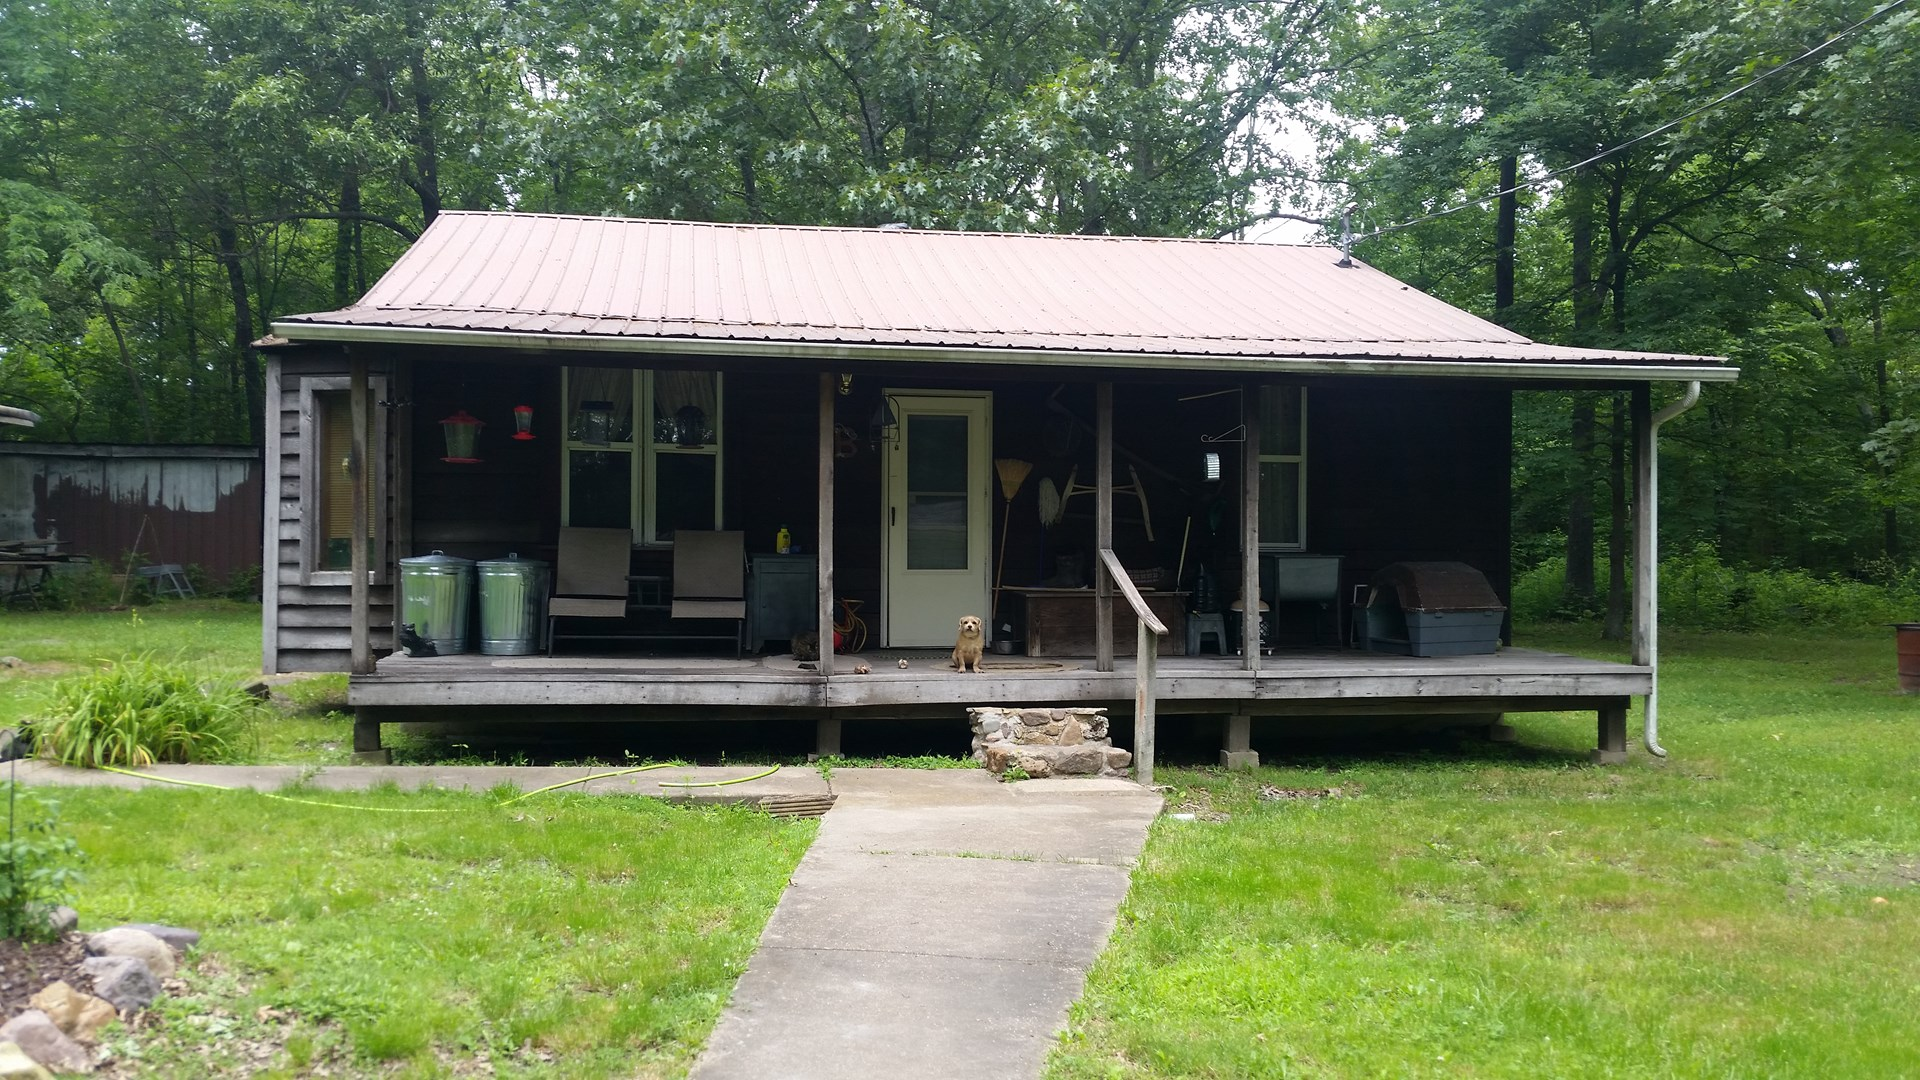 For Sale: 2 bed 1 bath rustic cabin home on 5 wooded acres